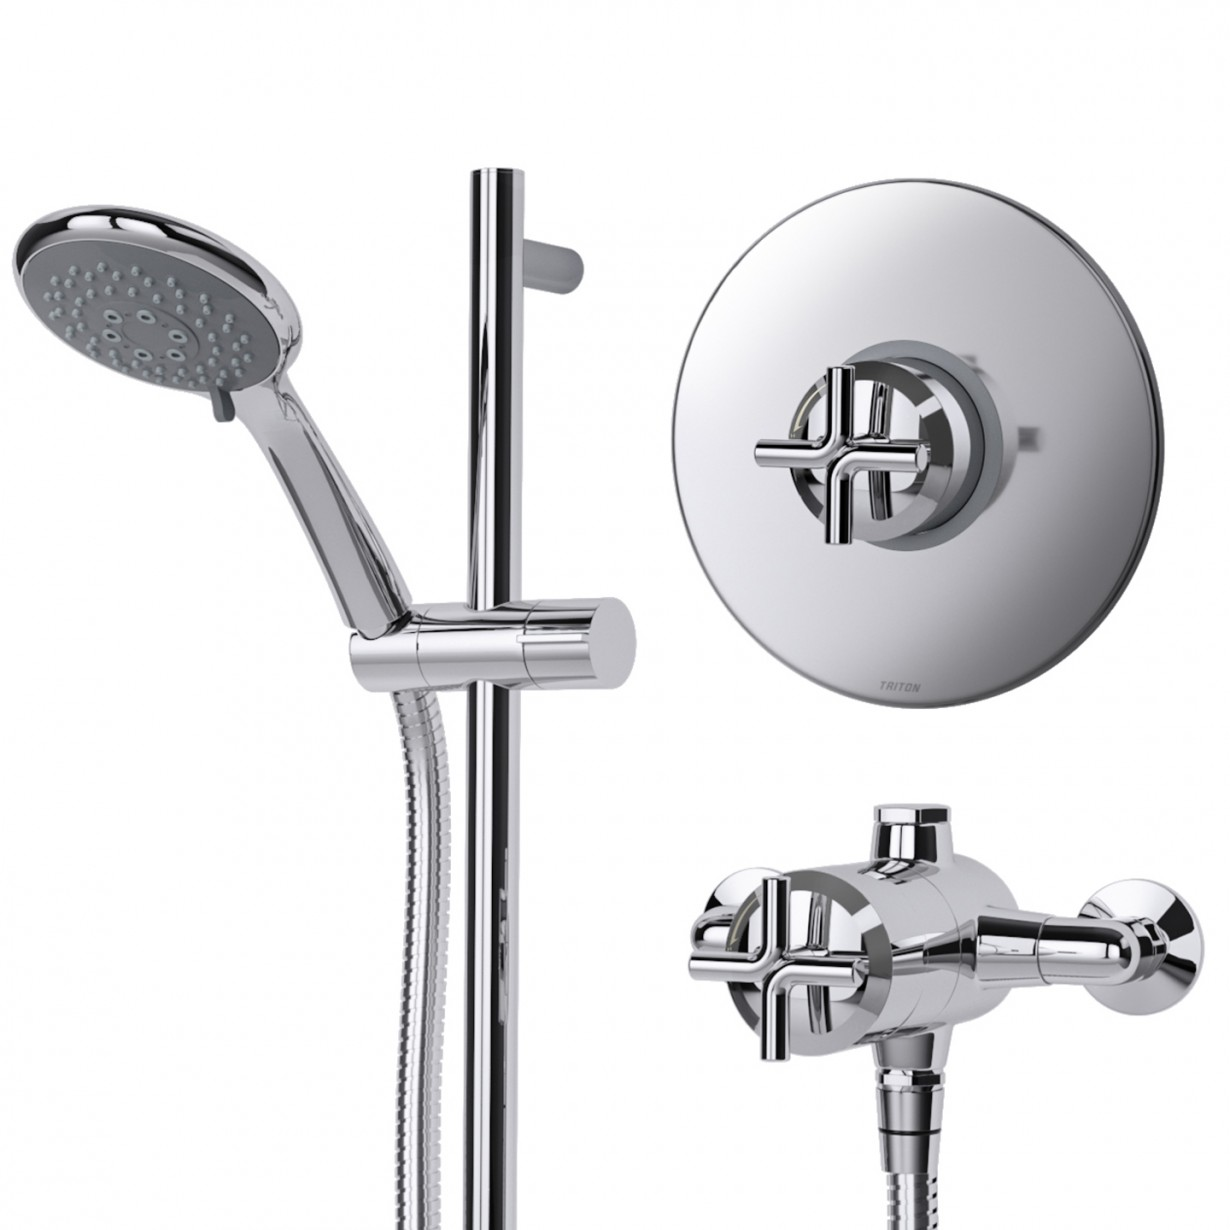 Concealed Shower Room Steam Room Thermostatic Valve: Triton Kensey Thermostatic Mixer Shower Exposed/Concealed